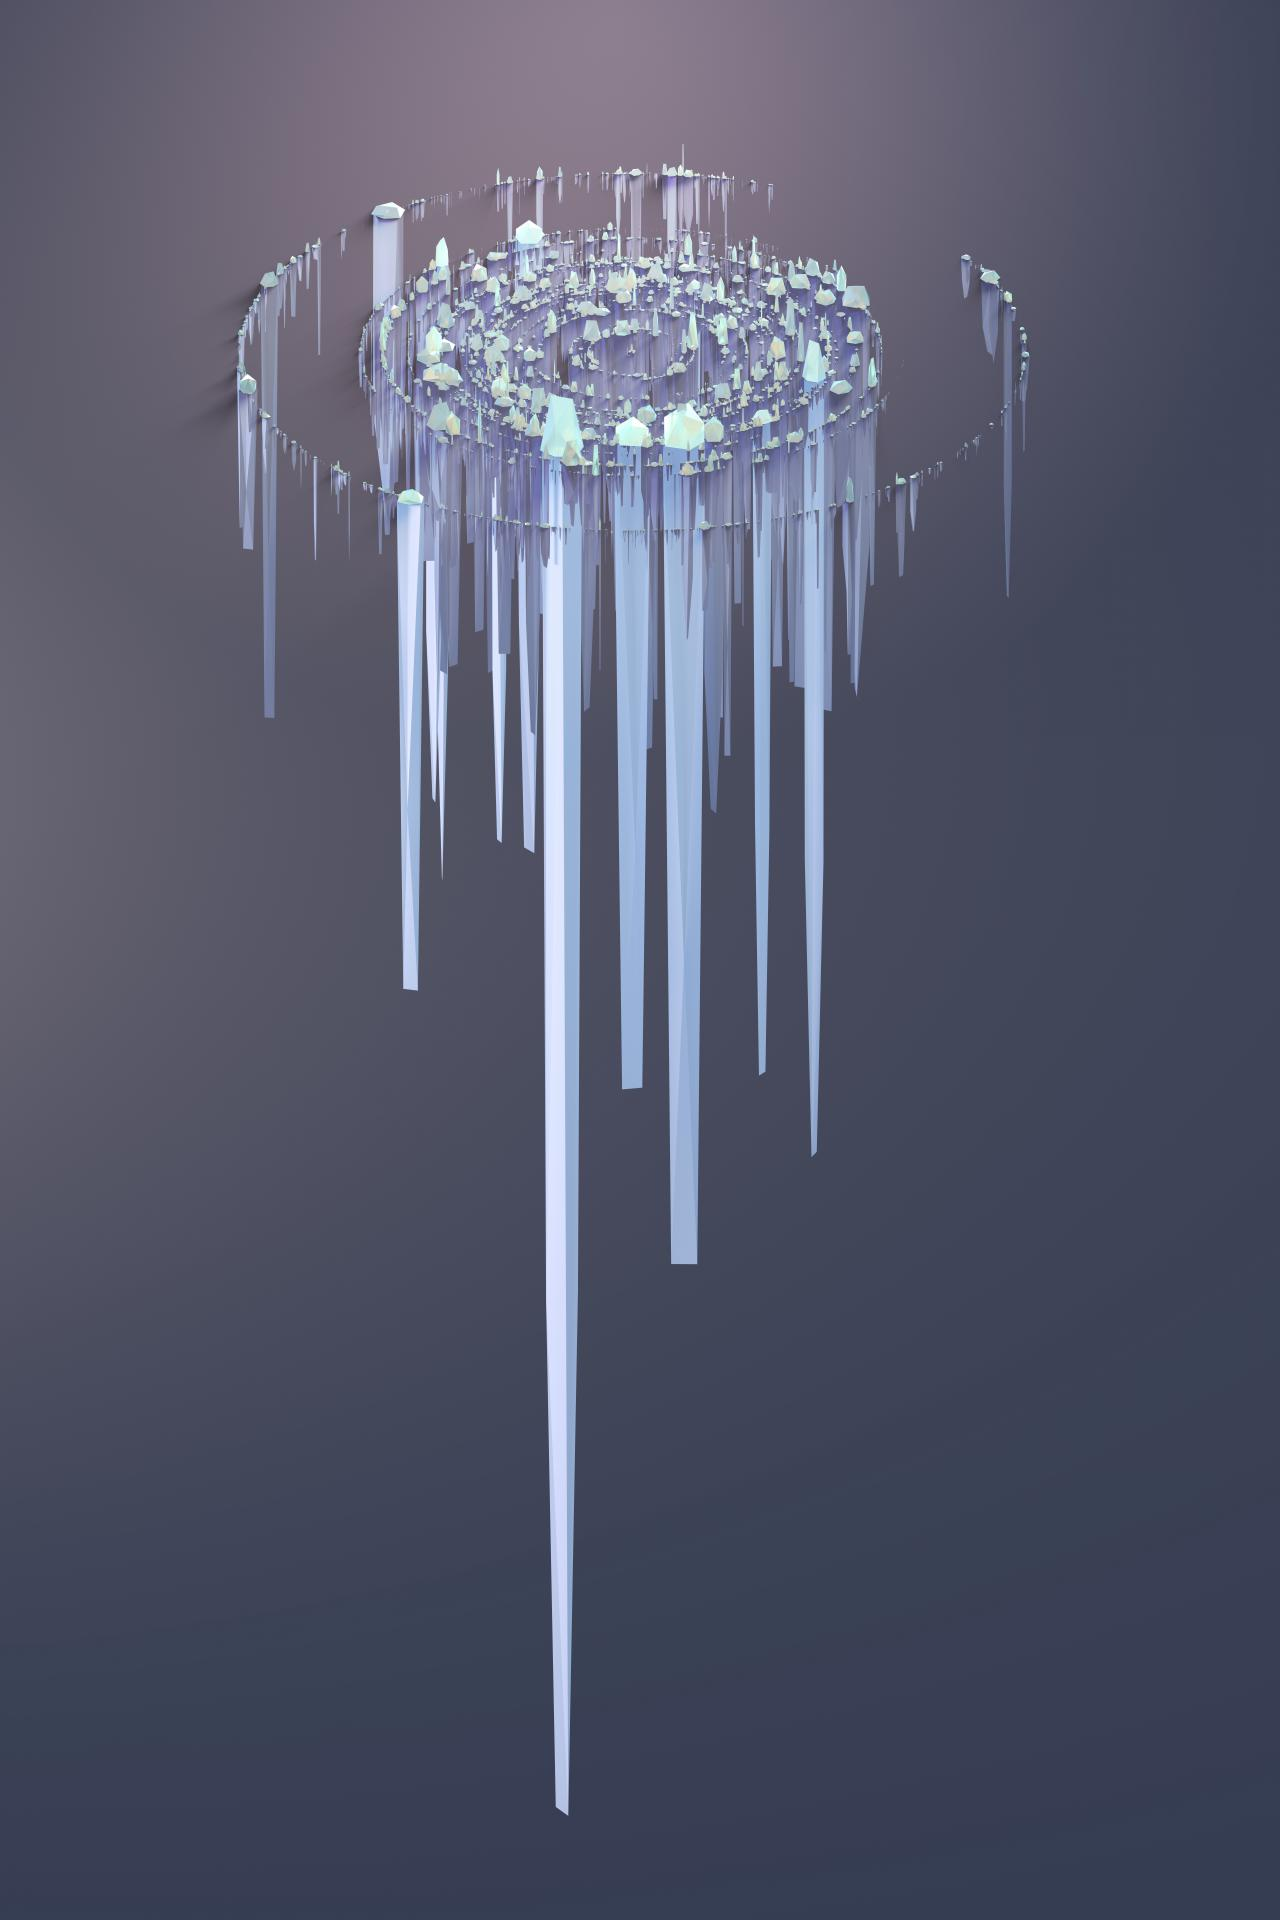 Circular structures floating in empty space that look like icicles in different lengths